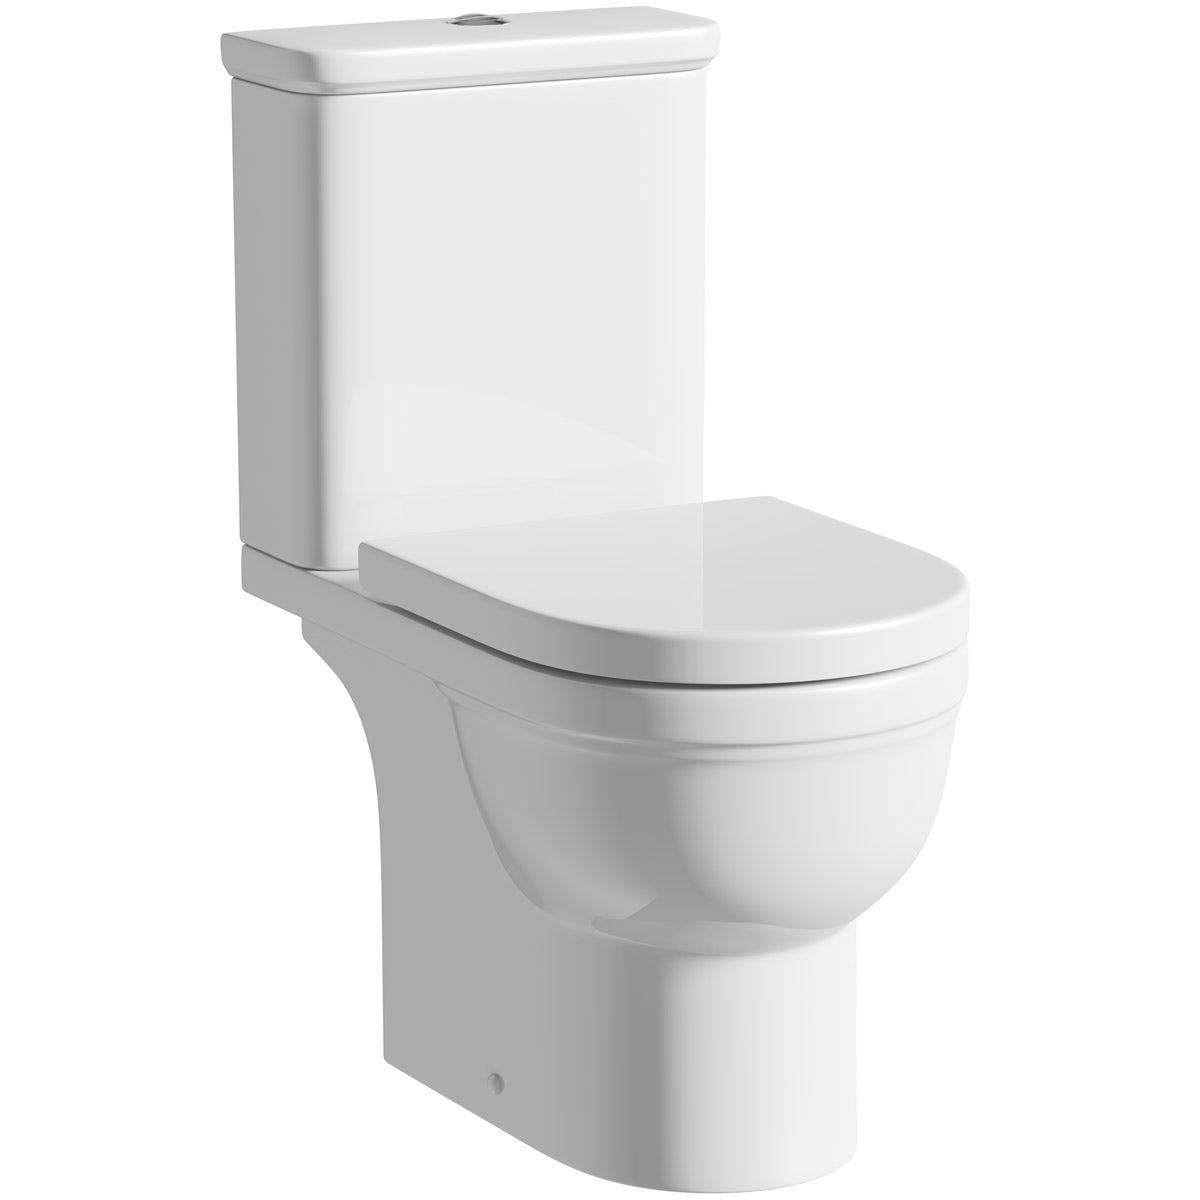 Orchard Elsdon close coupled toilet without toilet seat